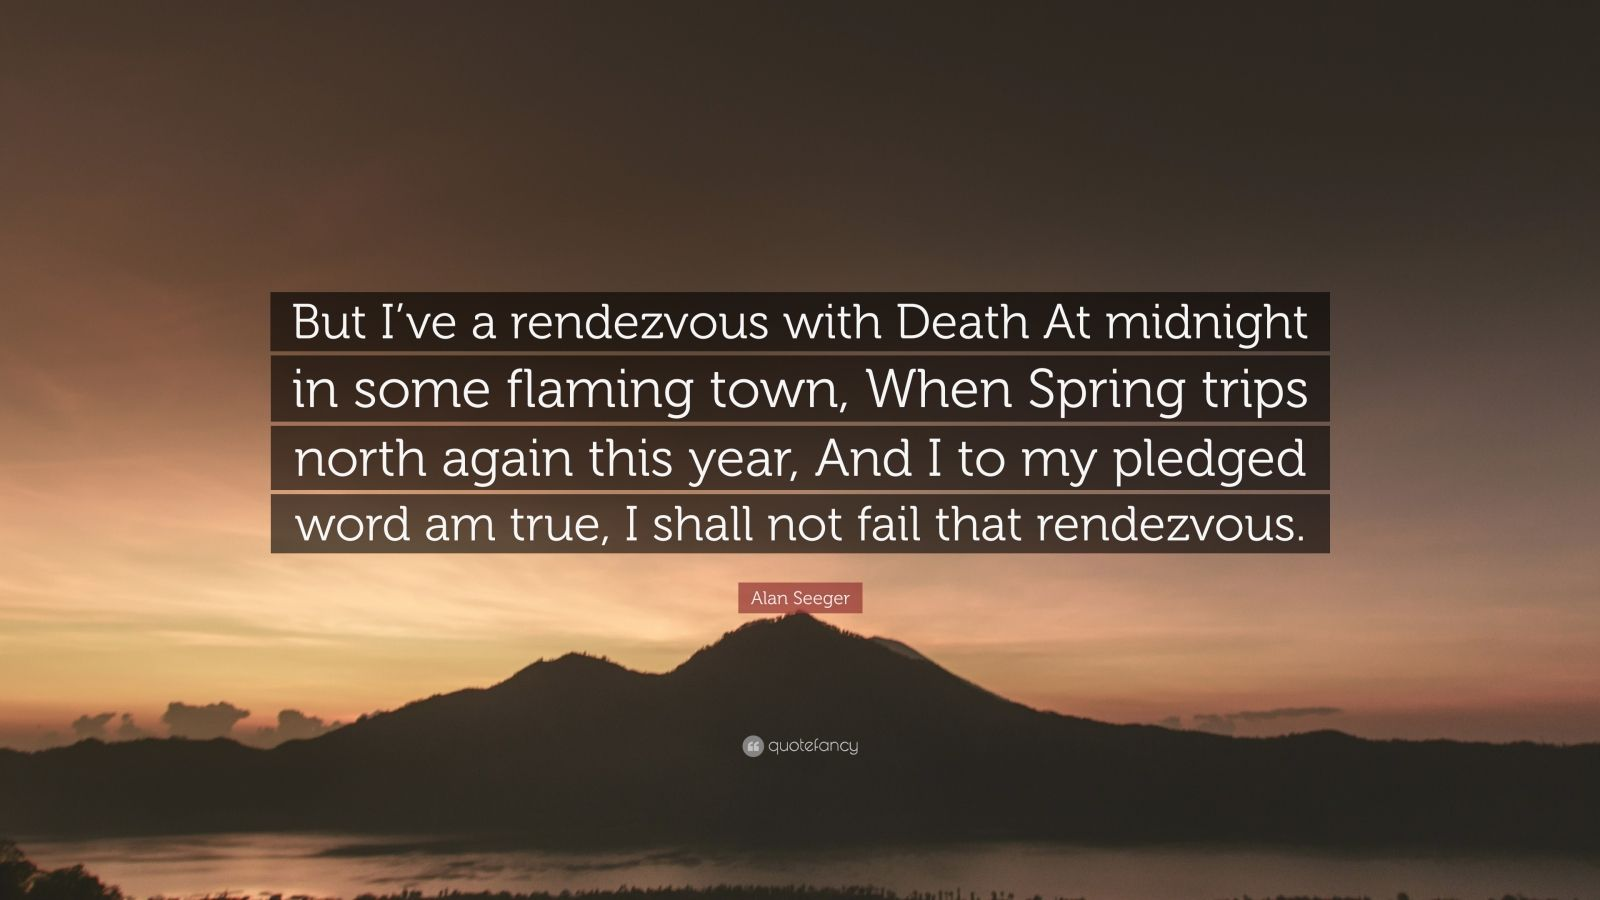 an analysis of the concept of love in the poem i have a rendezvous with death by alan seegar I don't think anyone's immune from the doldrums the same goes for loneliness just recently, i felt a wave of something tinged with sadness and just wanted to be comfortable and tucked up some place familiar.